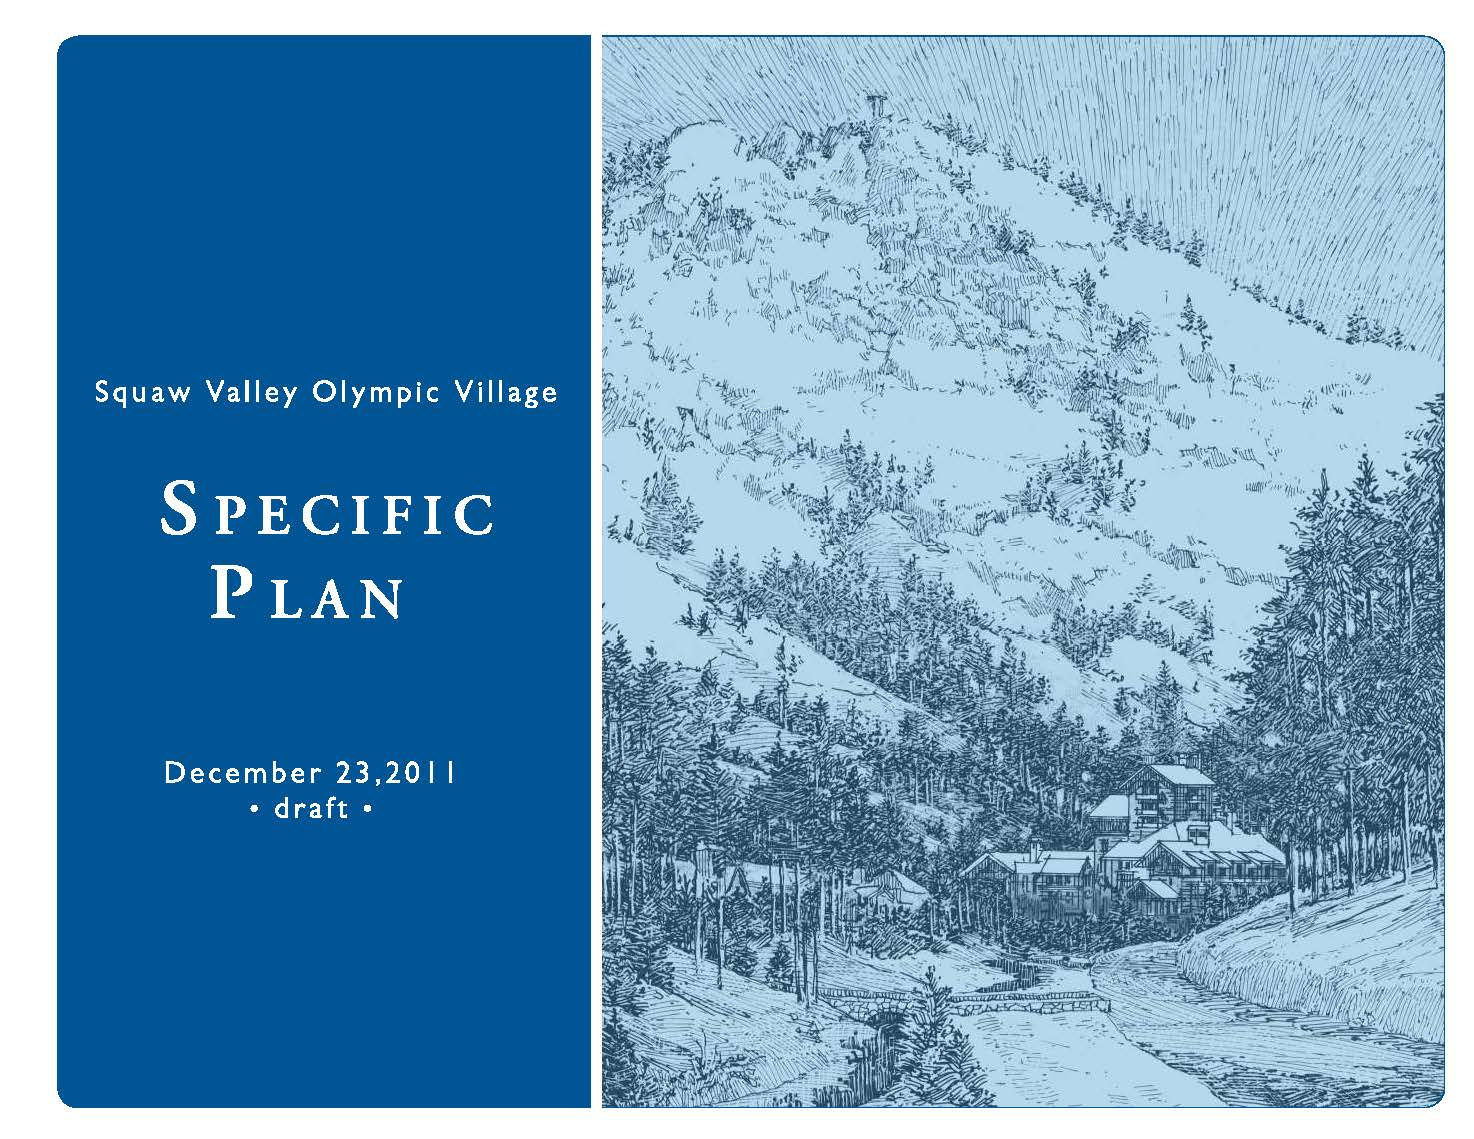 Squaw Valley Olympic Village Specific Plan